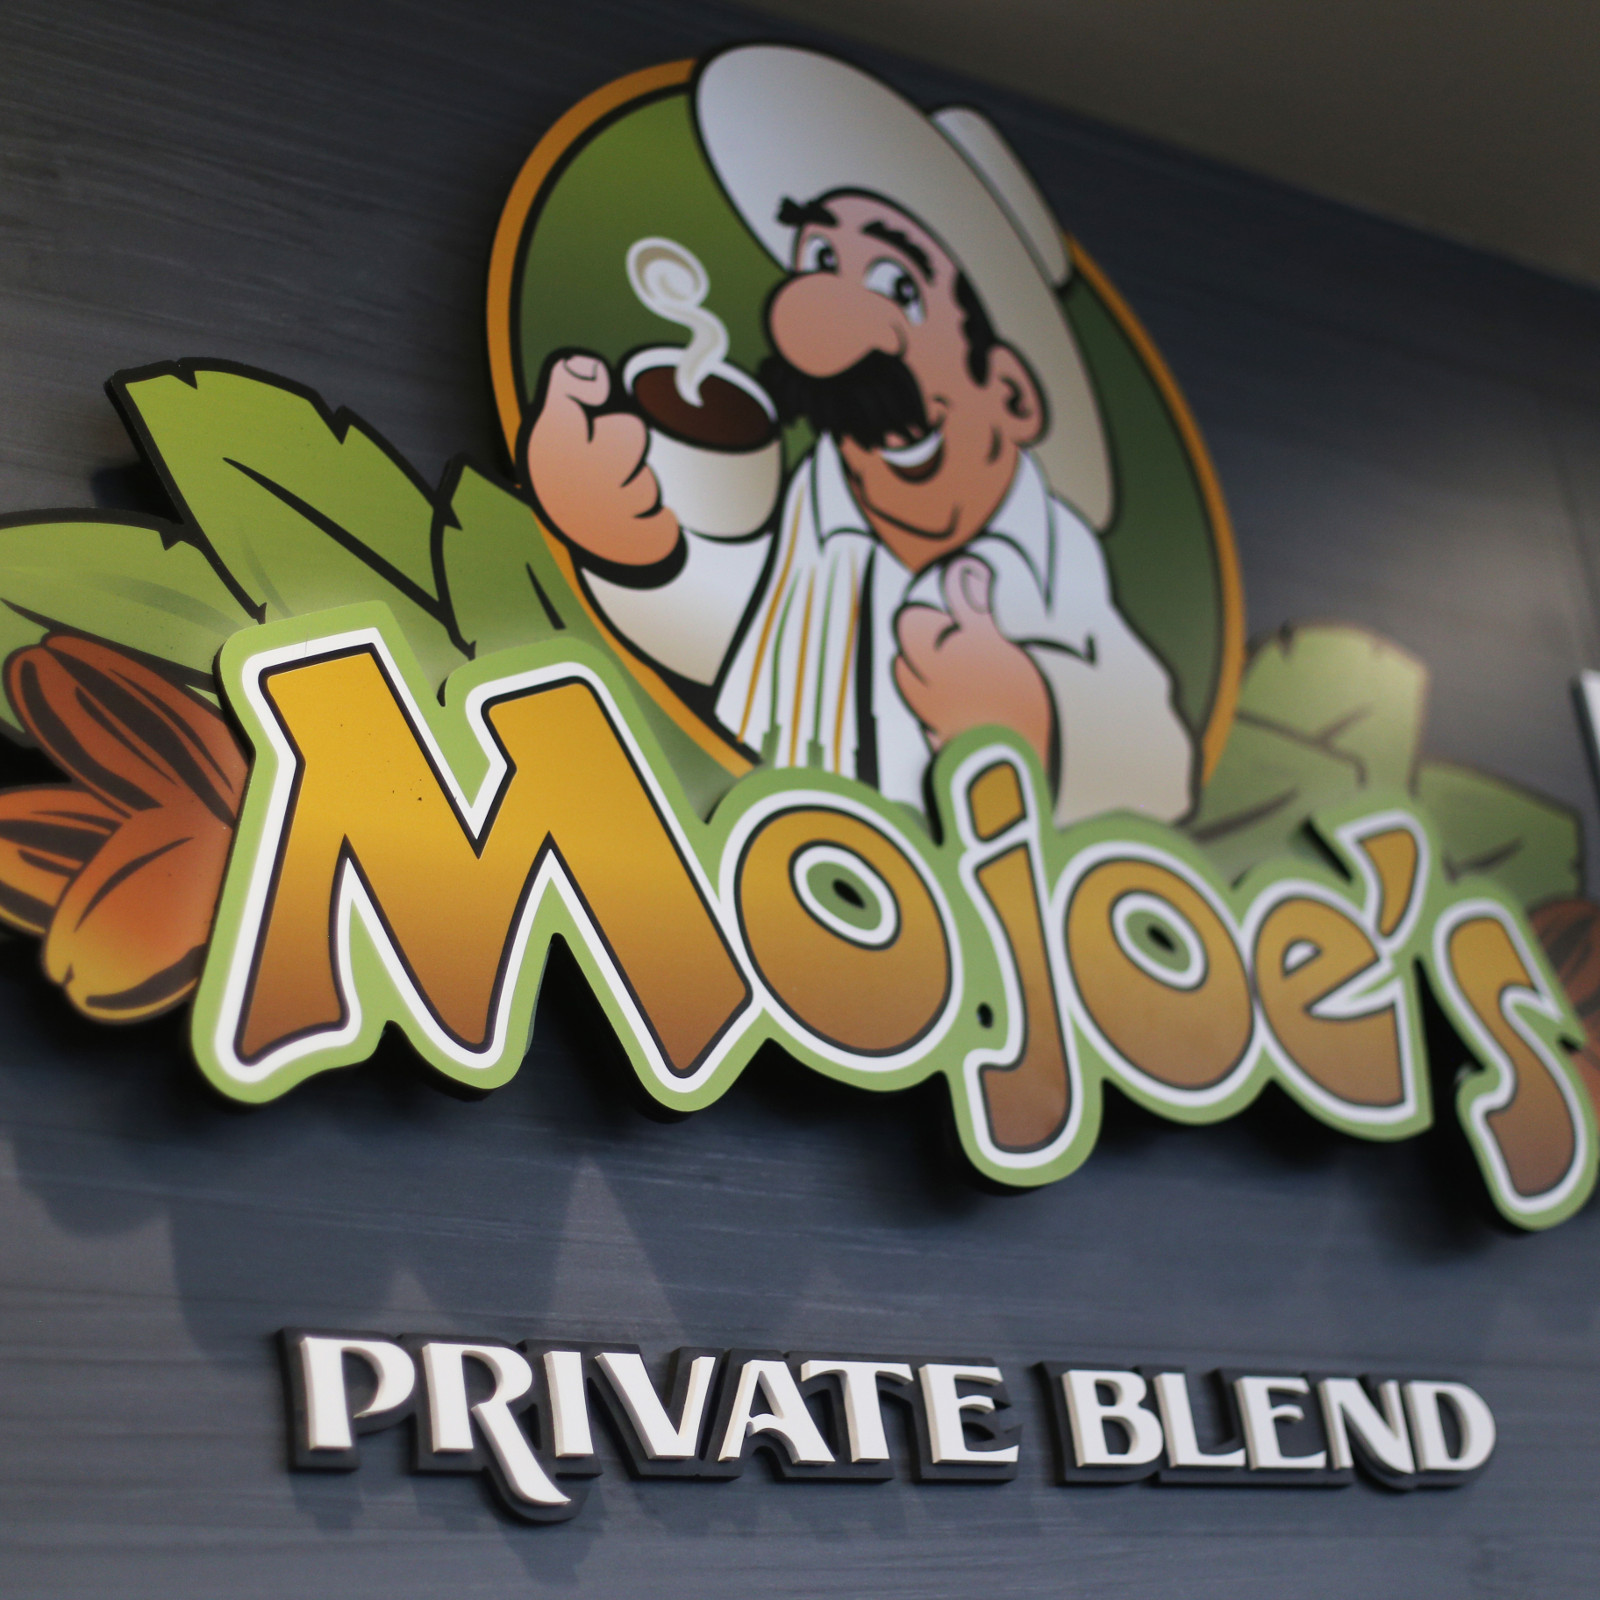 Mojo's Private Blend Coffee Moto Mart C-Store Graphic